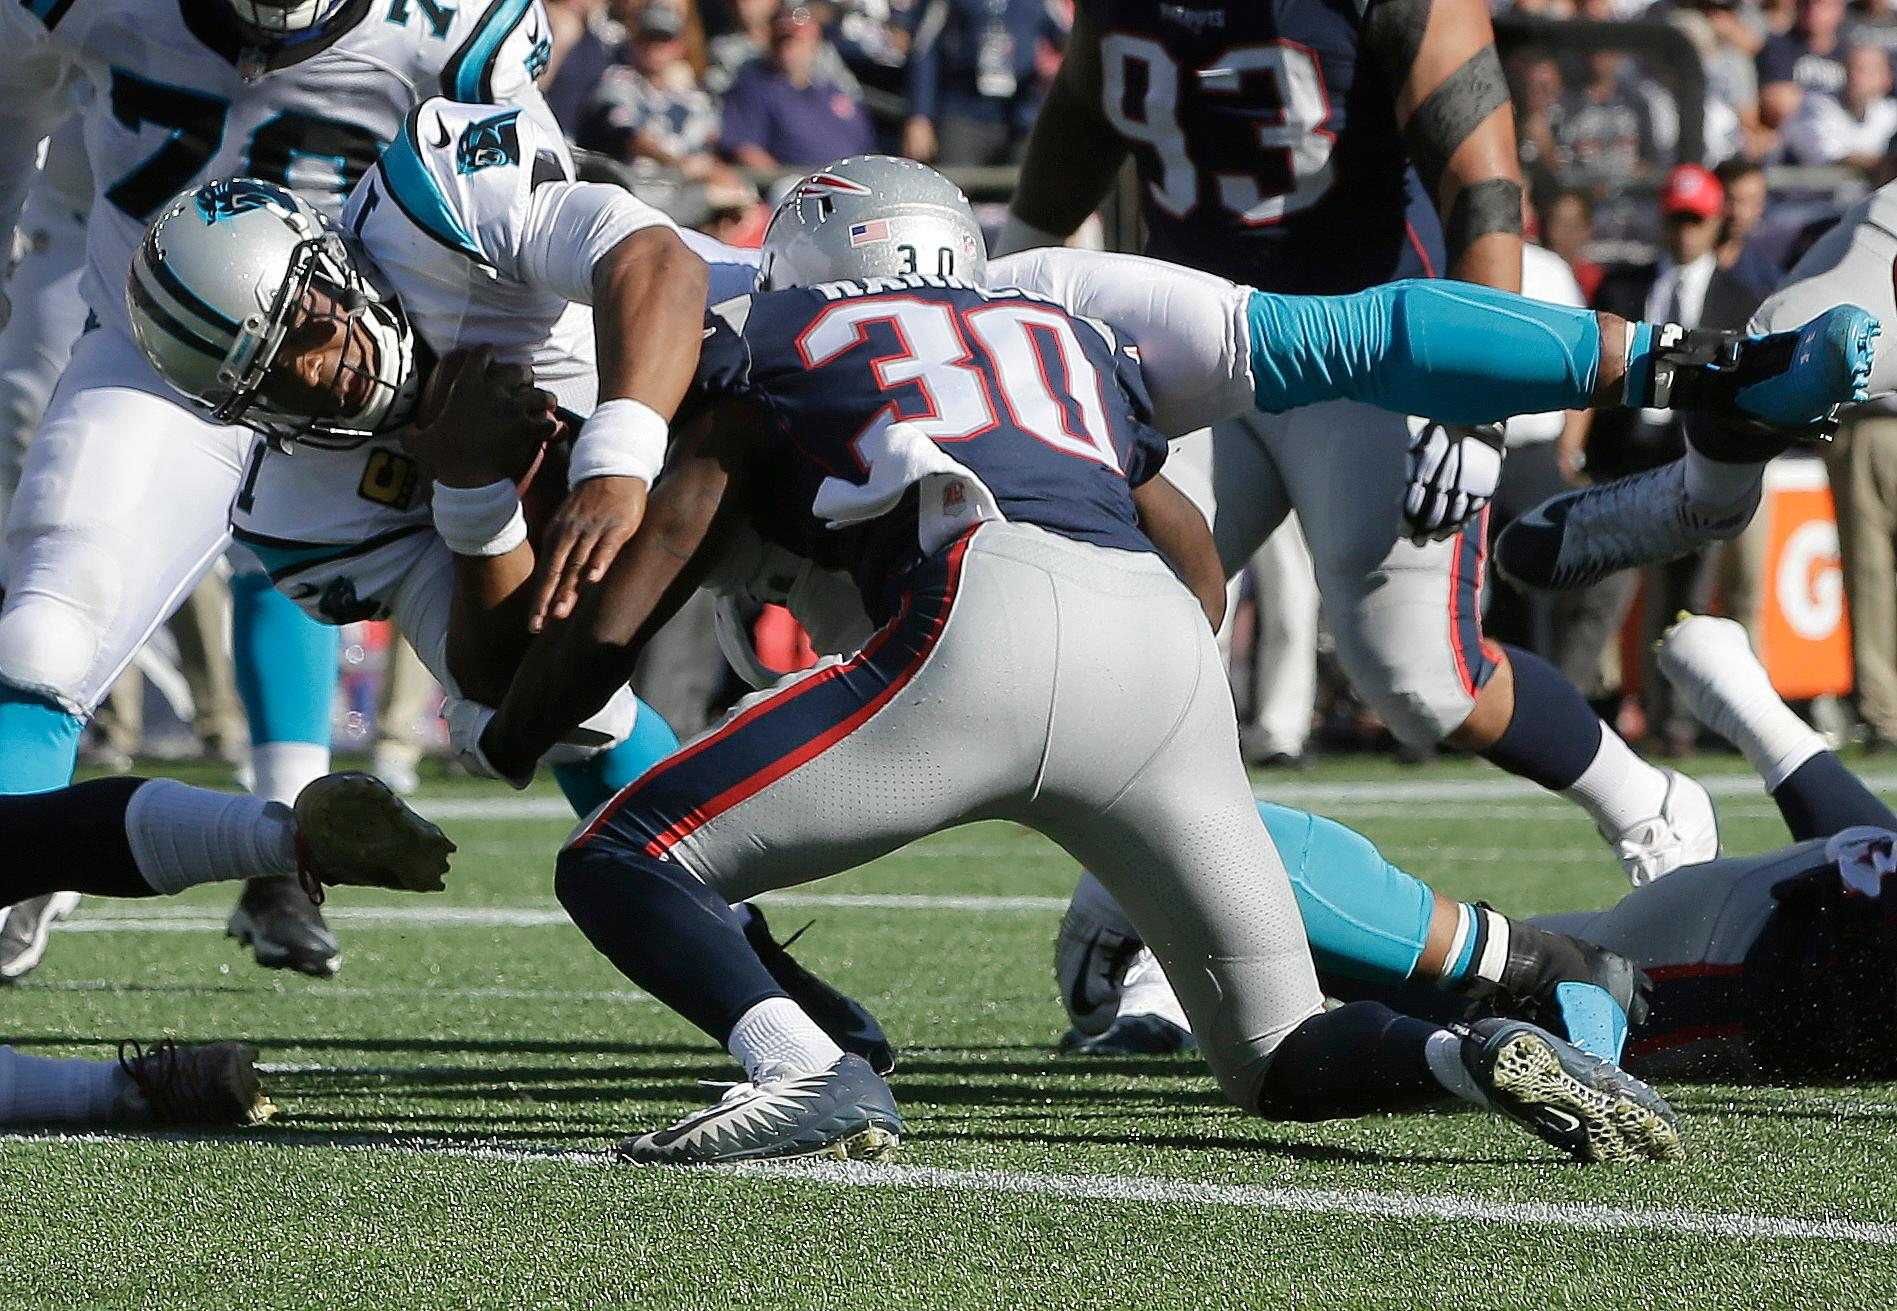 Carolina Panthers quarterback Cam Newton dives for a touchdown past New England Patriots safety Duron Harmon (30) during the second half of an NFL football game, Sunday, Oct. 1, 2017, in Foxborough, Mass. (AP Photo/Steven Senne)